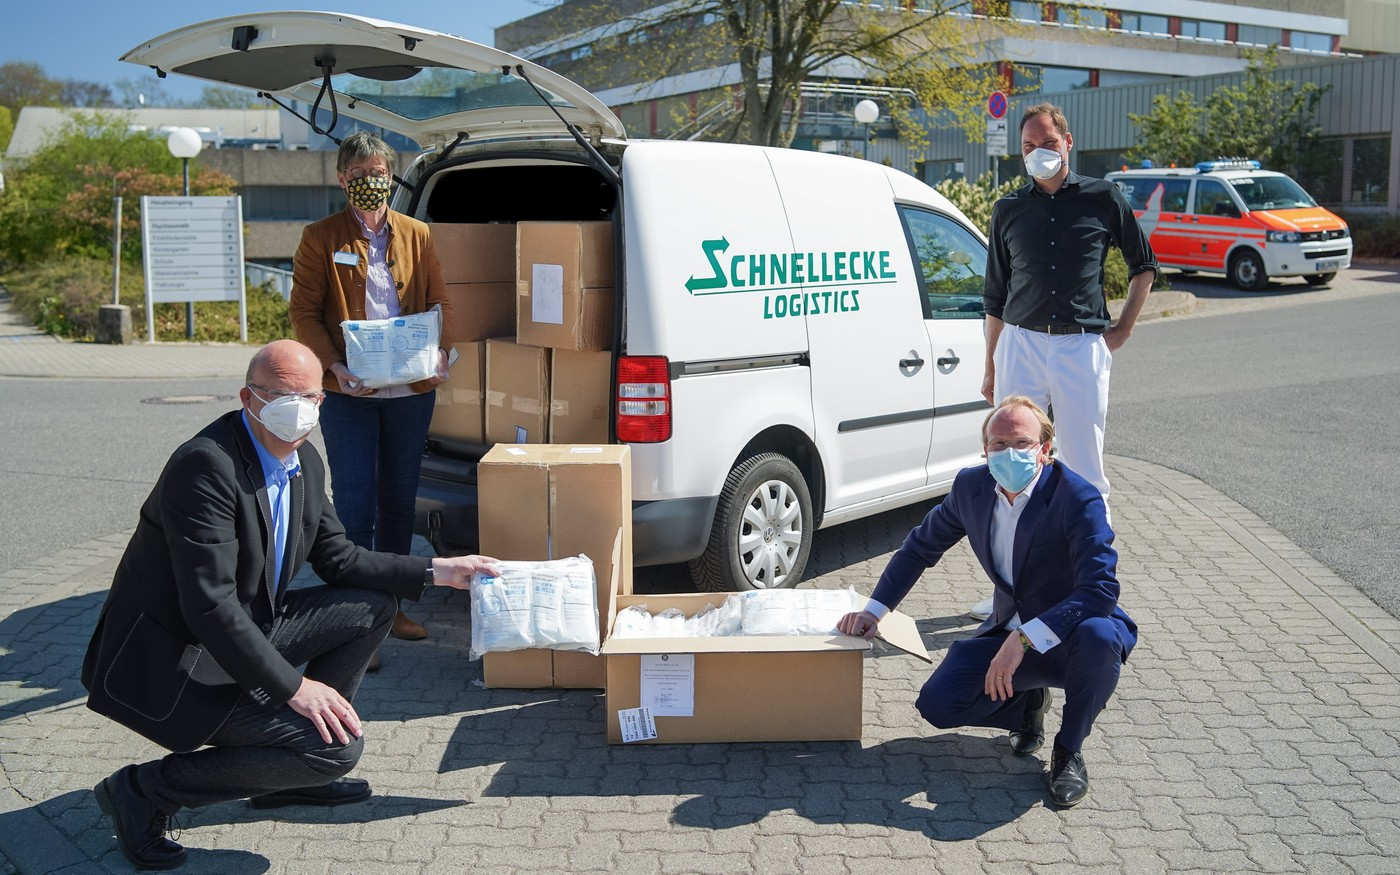 Schnellecke Logistics Donates 30,000 Mouth-Nose Protectors to Wolfsburg Hospital